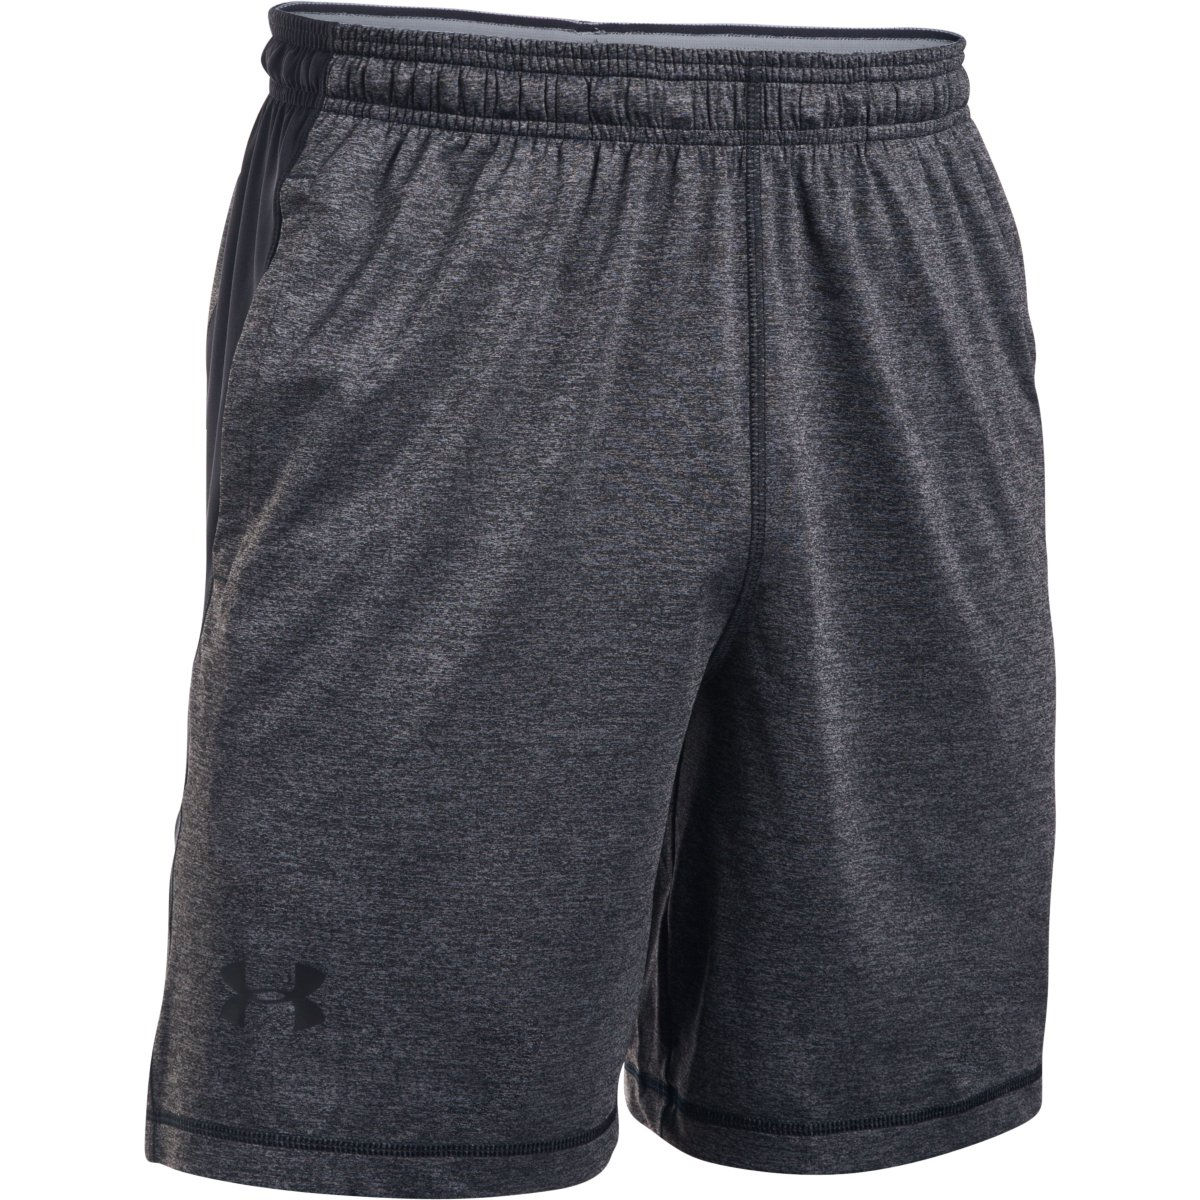 Short Under Armour Raid International (20 cm environ, AH16) - M Acier Shorts de running